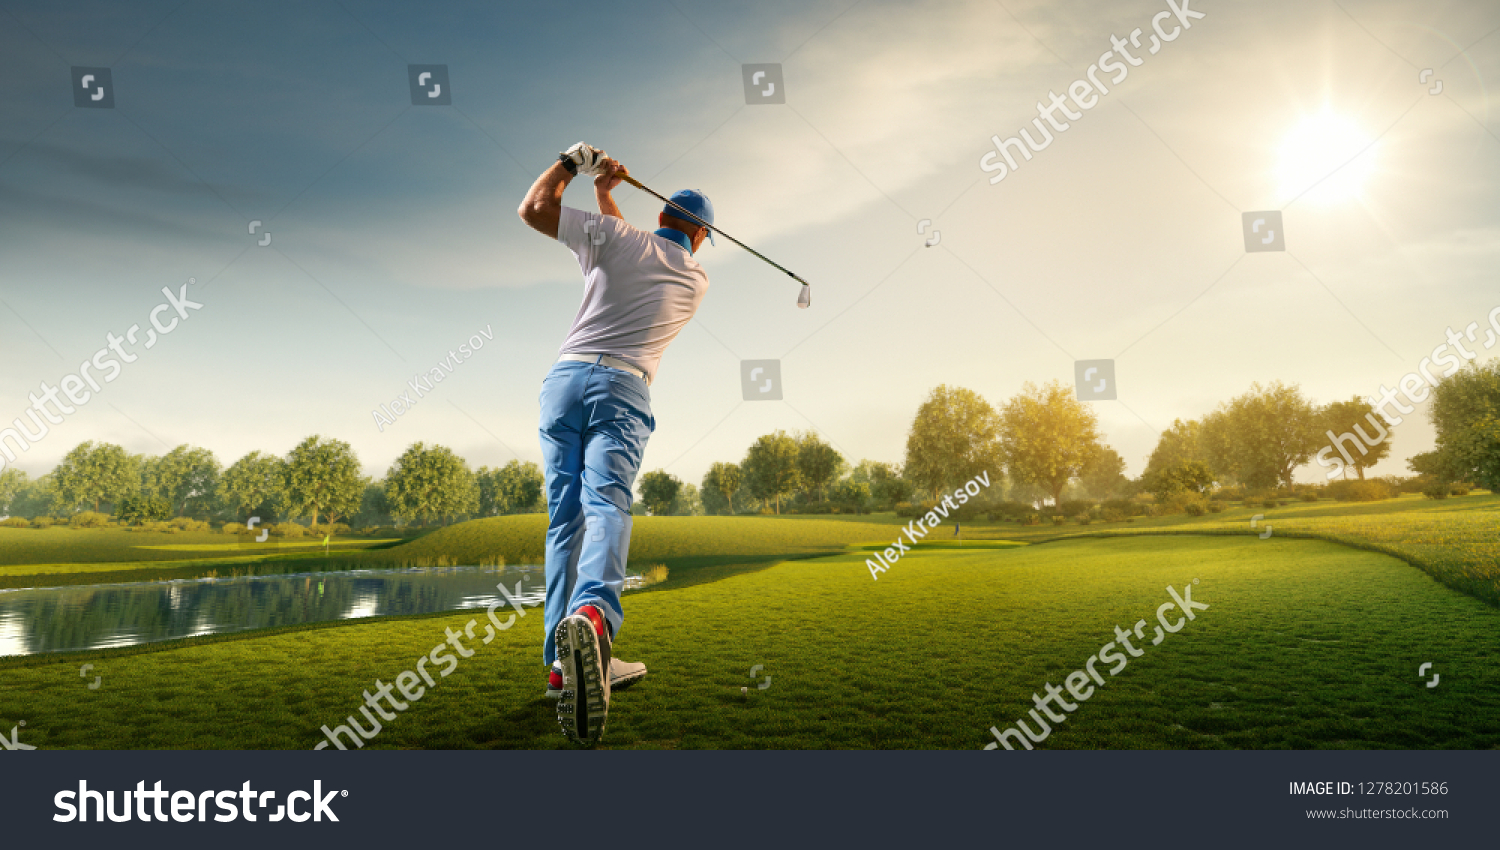 Male golf player on professional golf course. Golfer with golf club taking a shot #1278201586